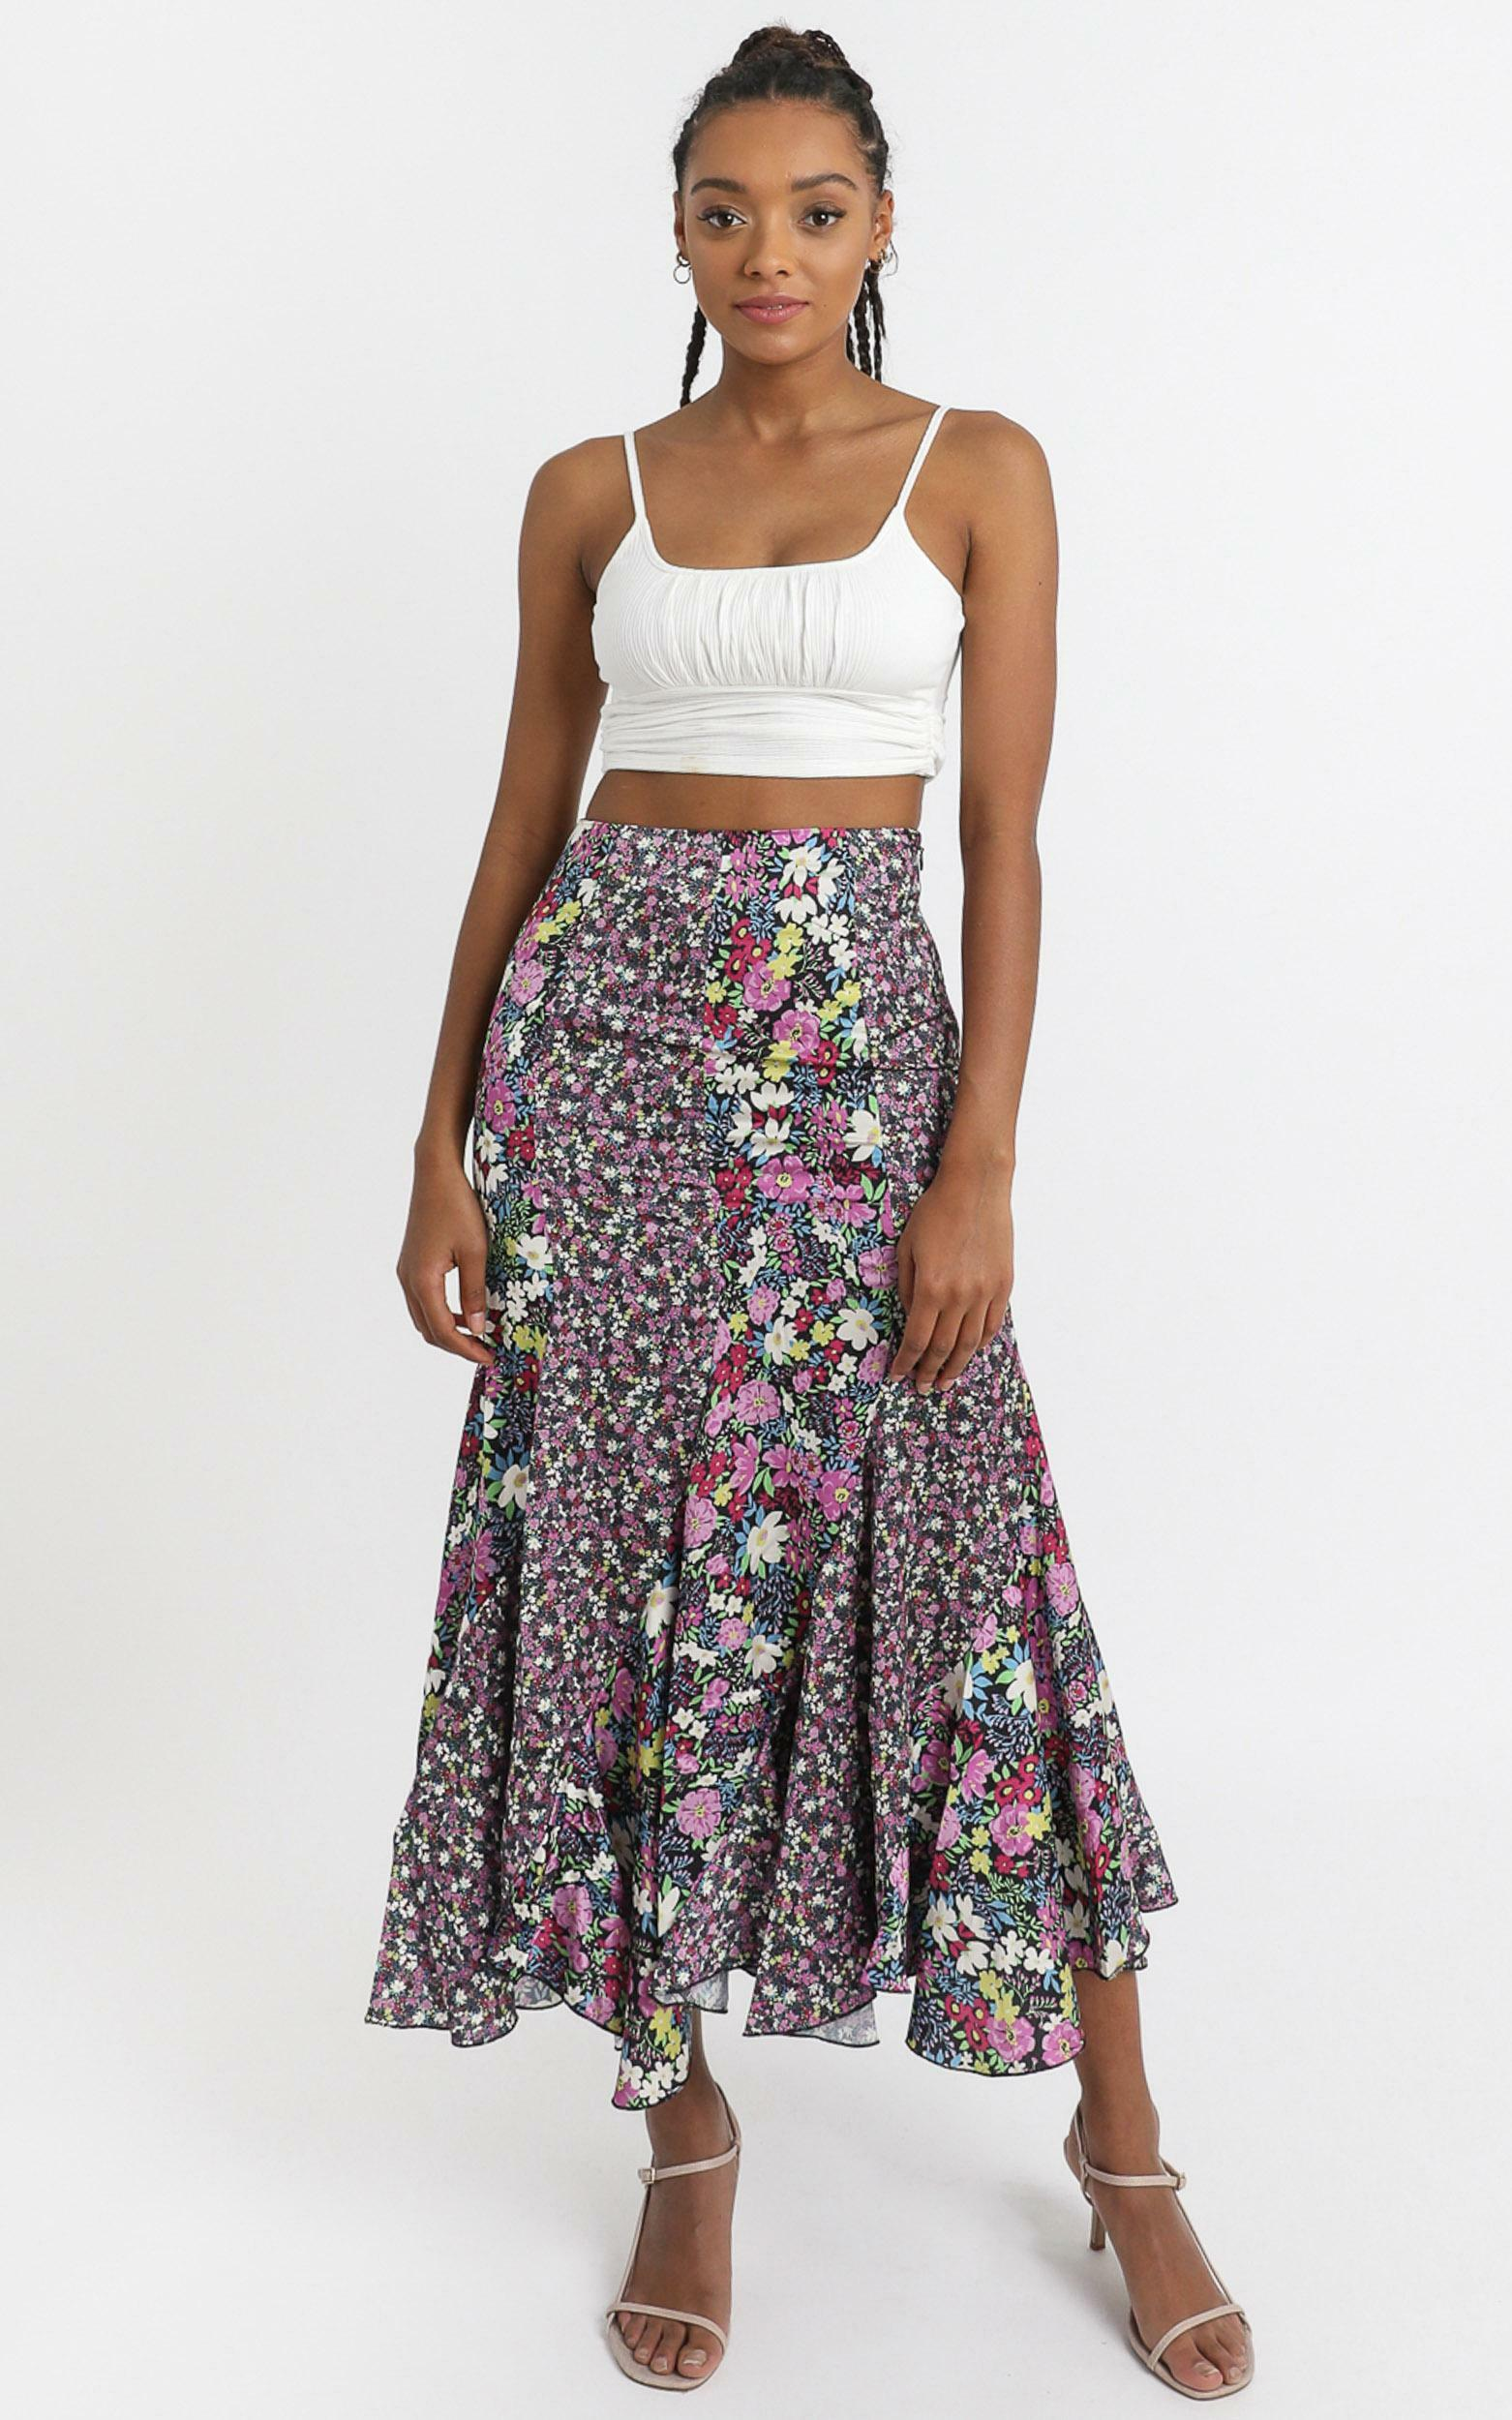 A Fool For You Skirt In Forest Floral - 4 (XXS), Purple, hi-res image number null